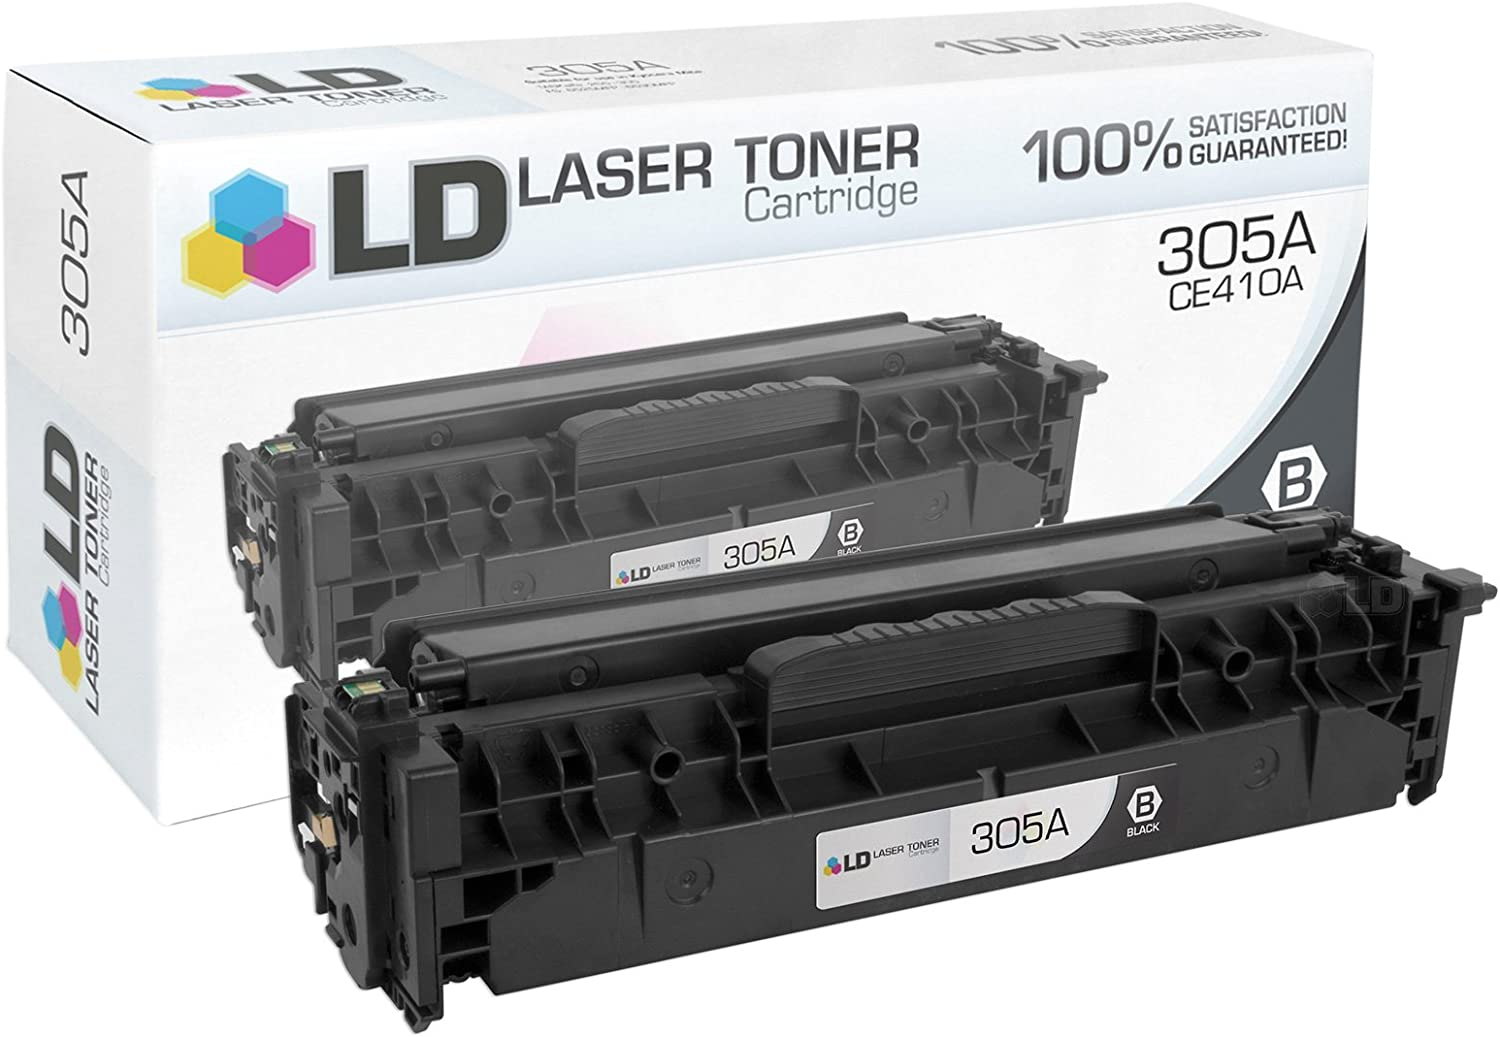 LD Remanufactured Toner Cartridge Replacement for HP 305A CE410A (Black)